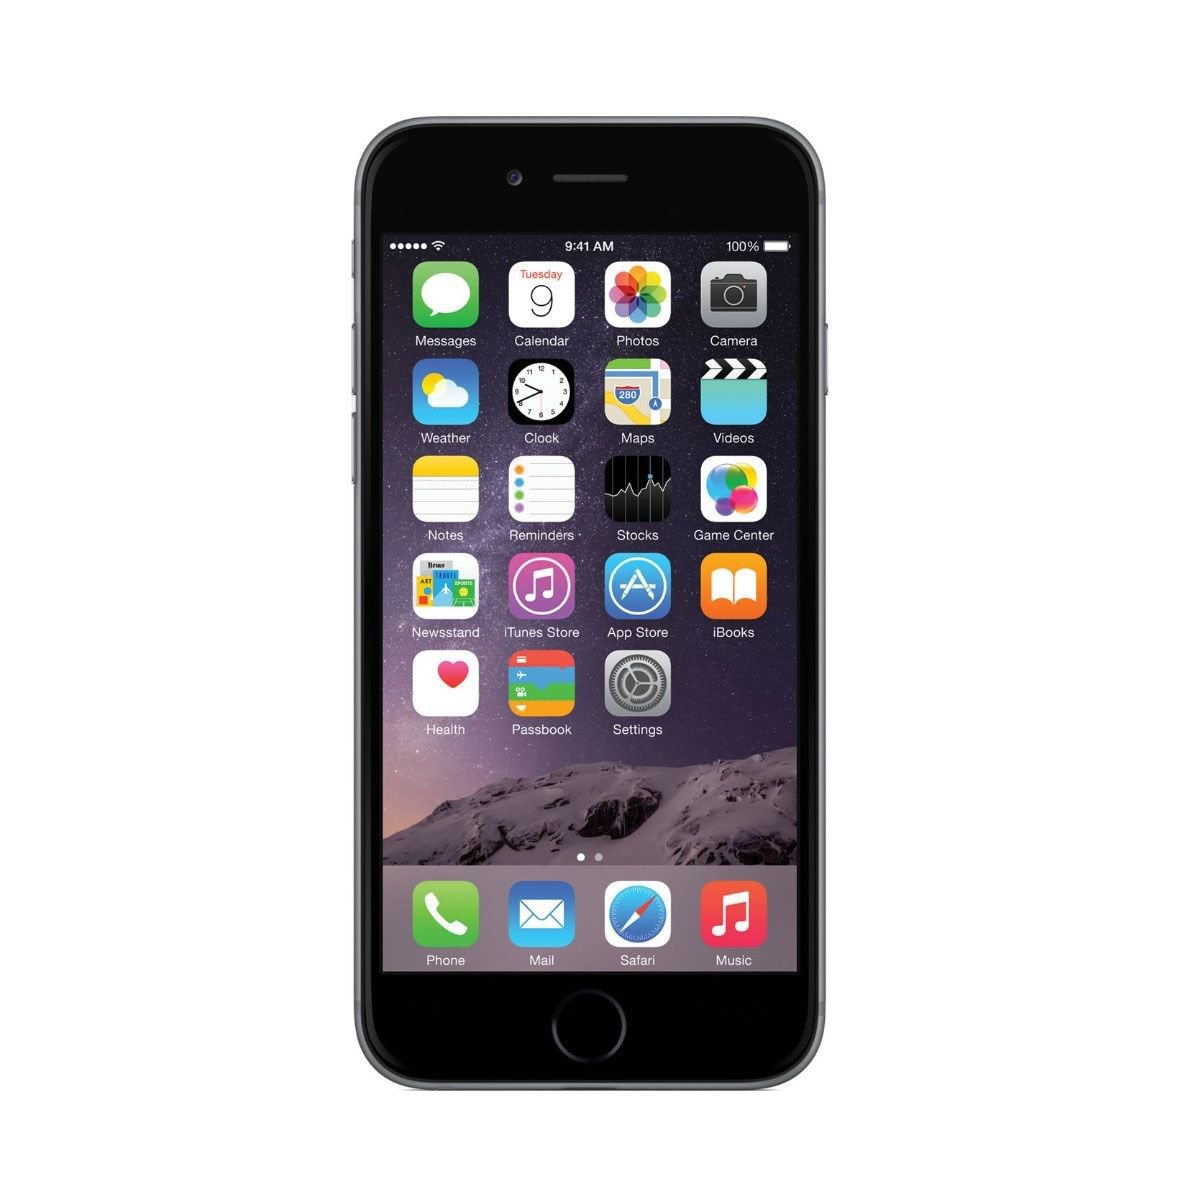 apple iphone 6 plus 64gb verizon wireless 4g lte 8mp camera ios smartphone gray. Black Bedroom Furniture Sets. Home Design Ideas